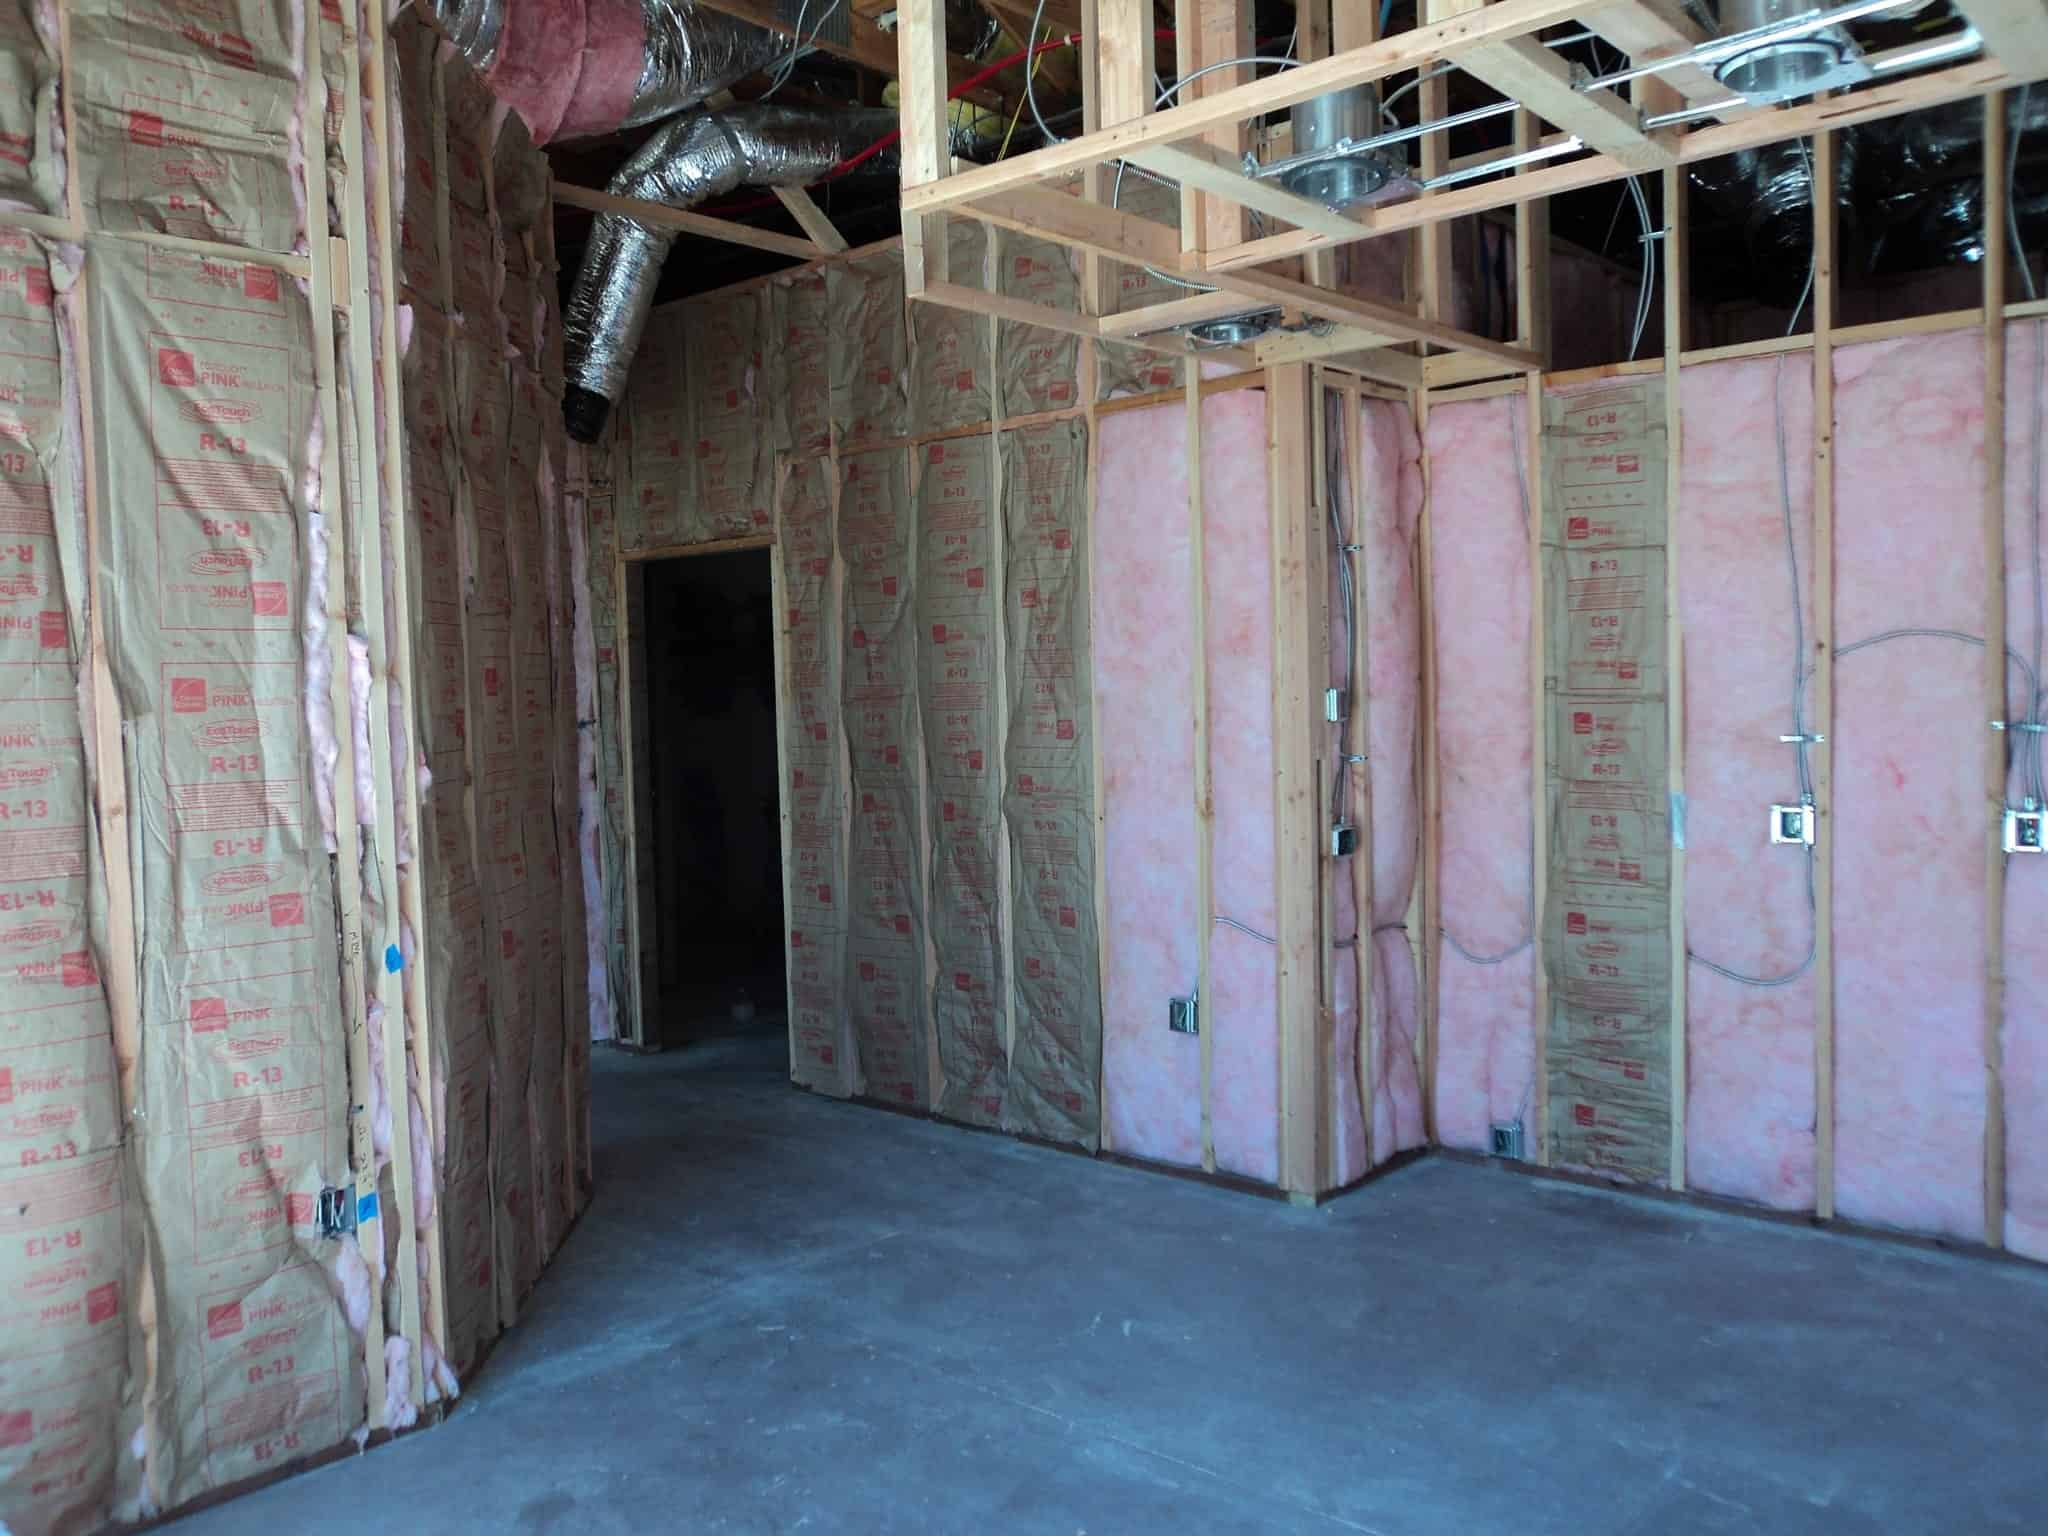 Photo a home with regular fiberglass insulation in the walls.